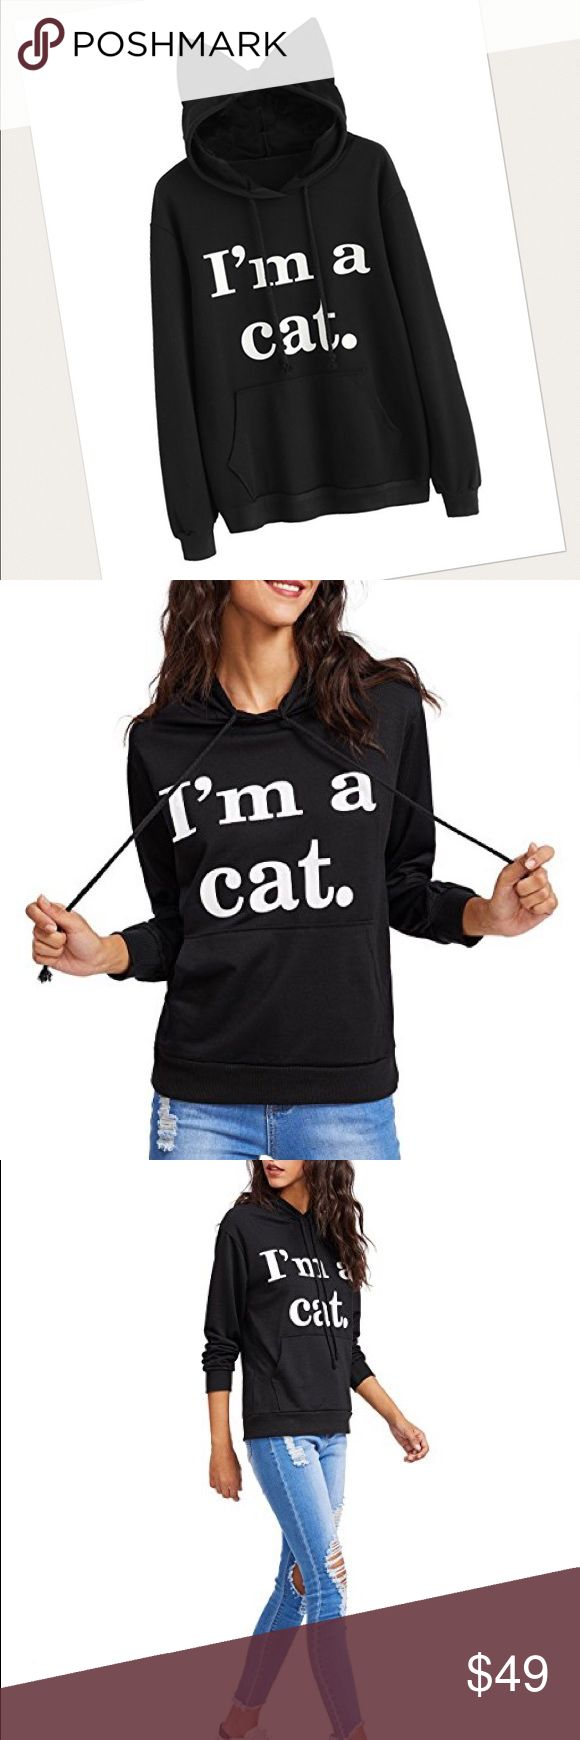 ♥sale♥ Cat hoodie Brand new w tags, boutique I am a cat black and white hooded sweatshirt. Sizes small-xxxl. 100% cotton.  POSH RULES ONLY NO PP NO TRADES NO LOWBALL OFFERS  HAPPY POSHING! boutique Tops Sweatshirts & Hoodies